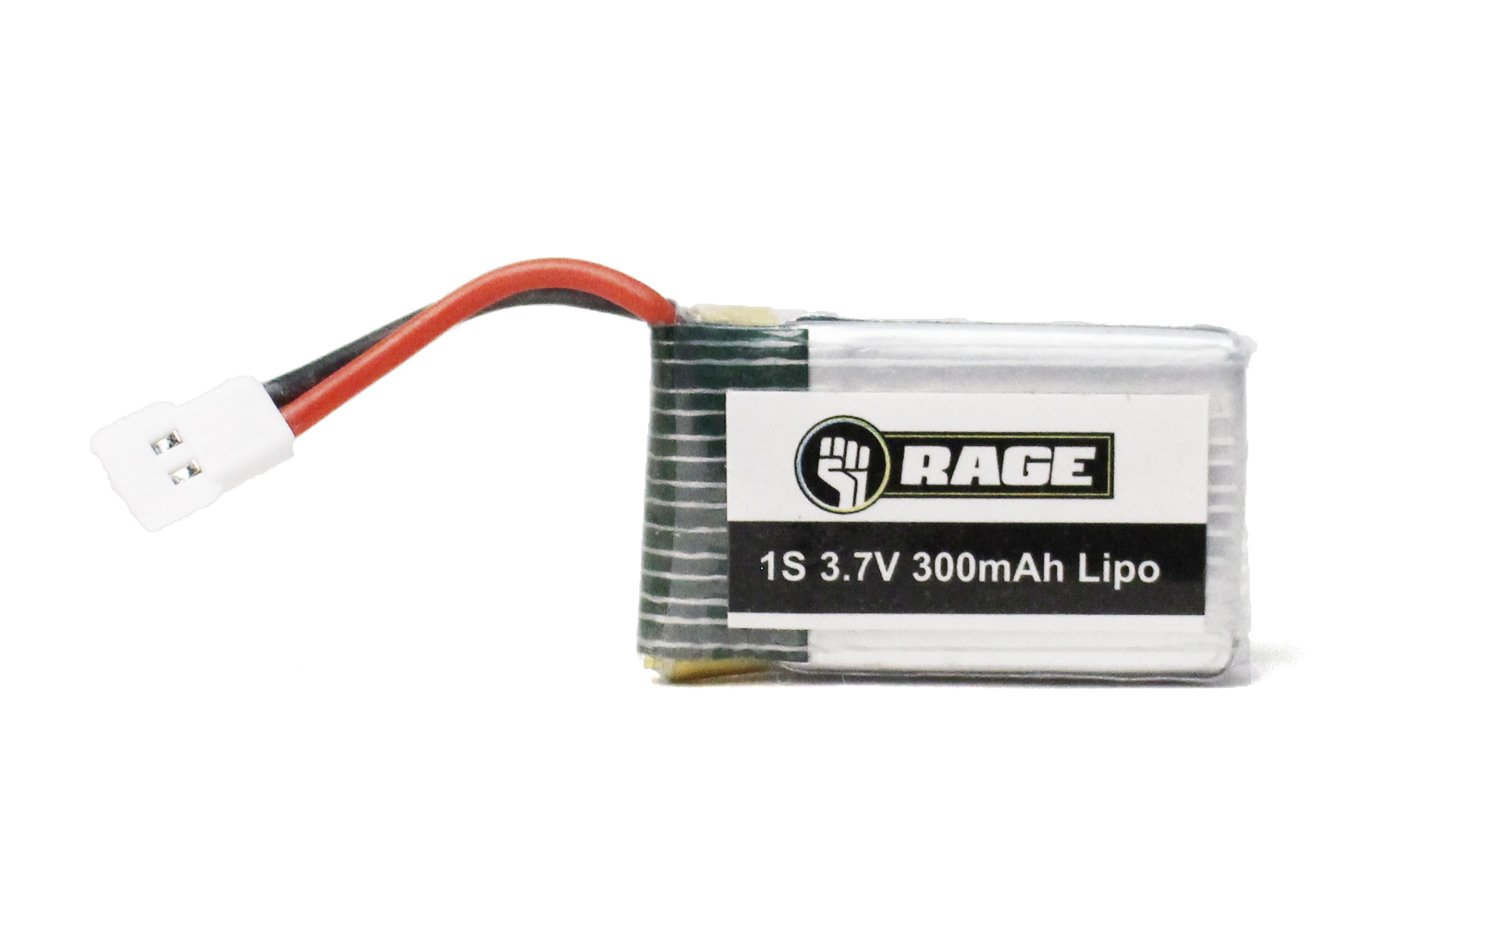 Rage RC 3060 1S 3.7V 300mAh LiPo Battery Orbit FPV Replacement Parts